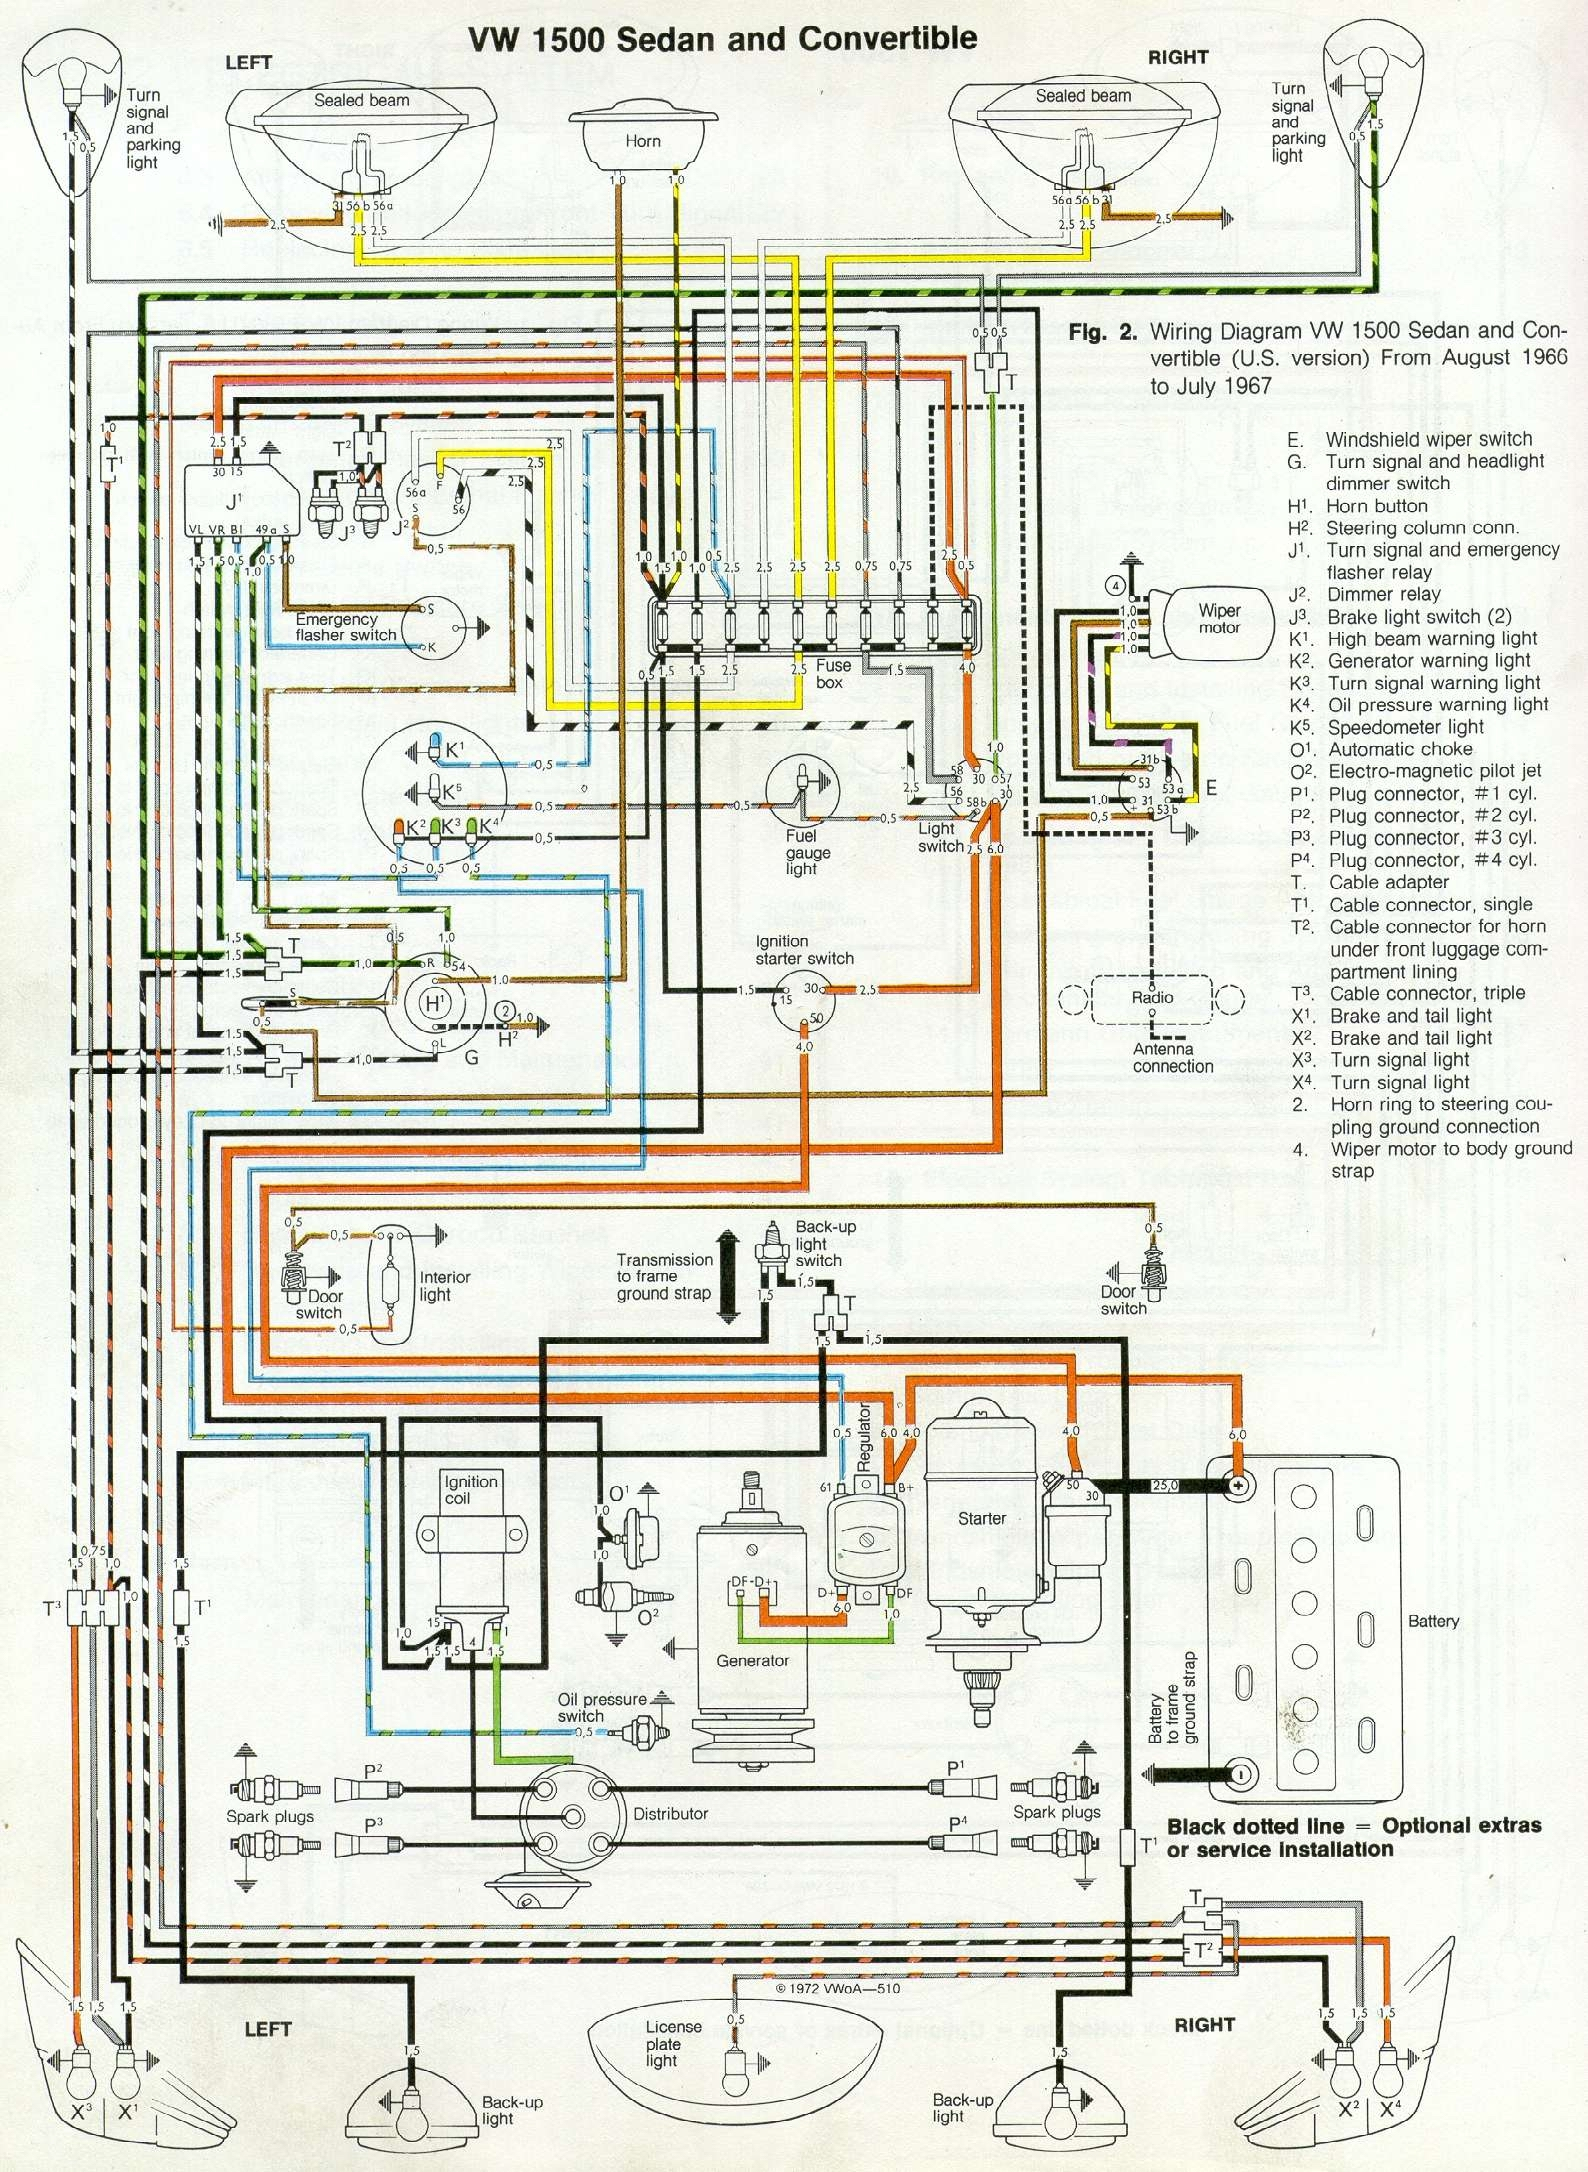 66 and 67 vw beetle wiring diagram 1967 vw beetle rh 1967beetle com vw beetle wiring diagram 1974 vw beetle wiring diagram 1972